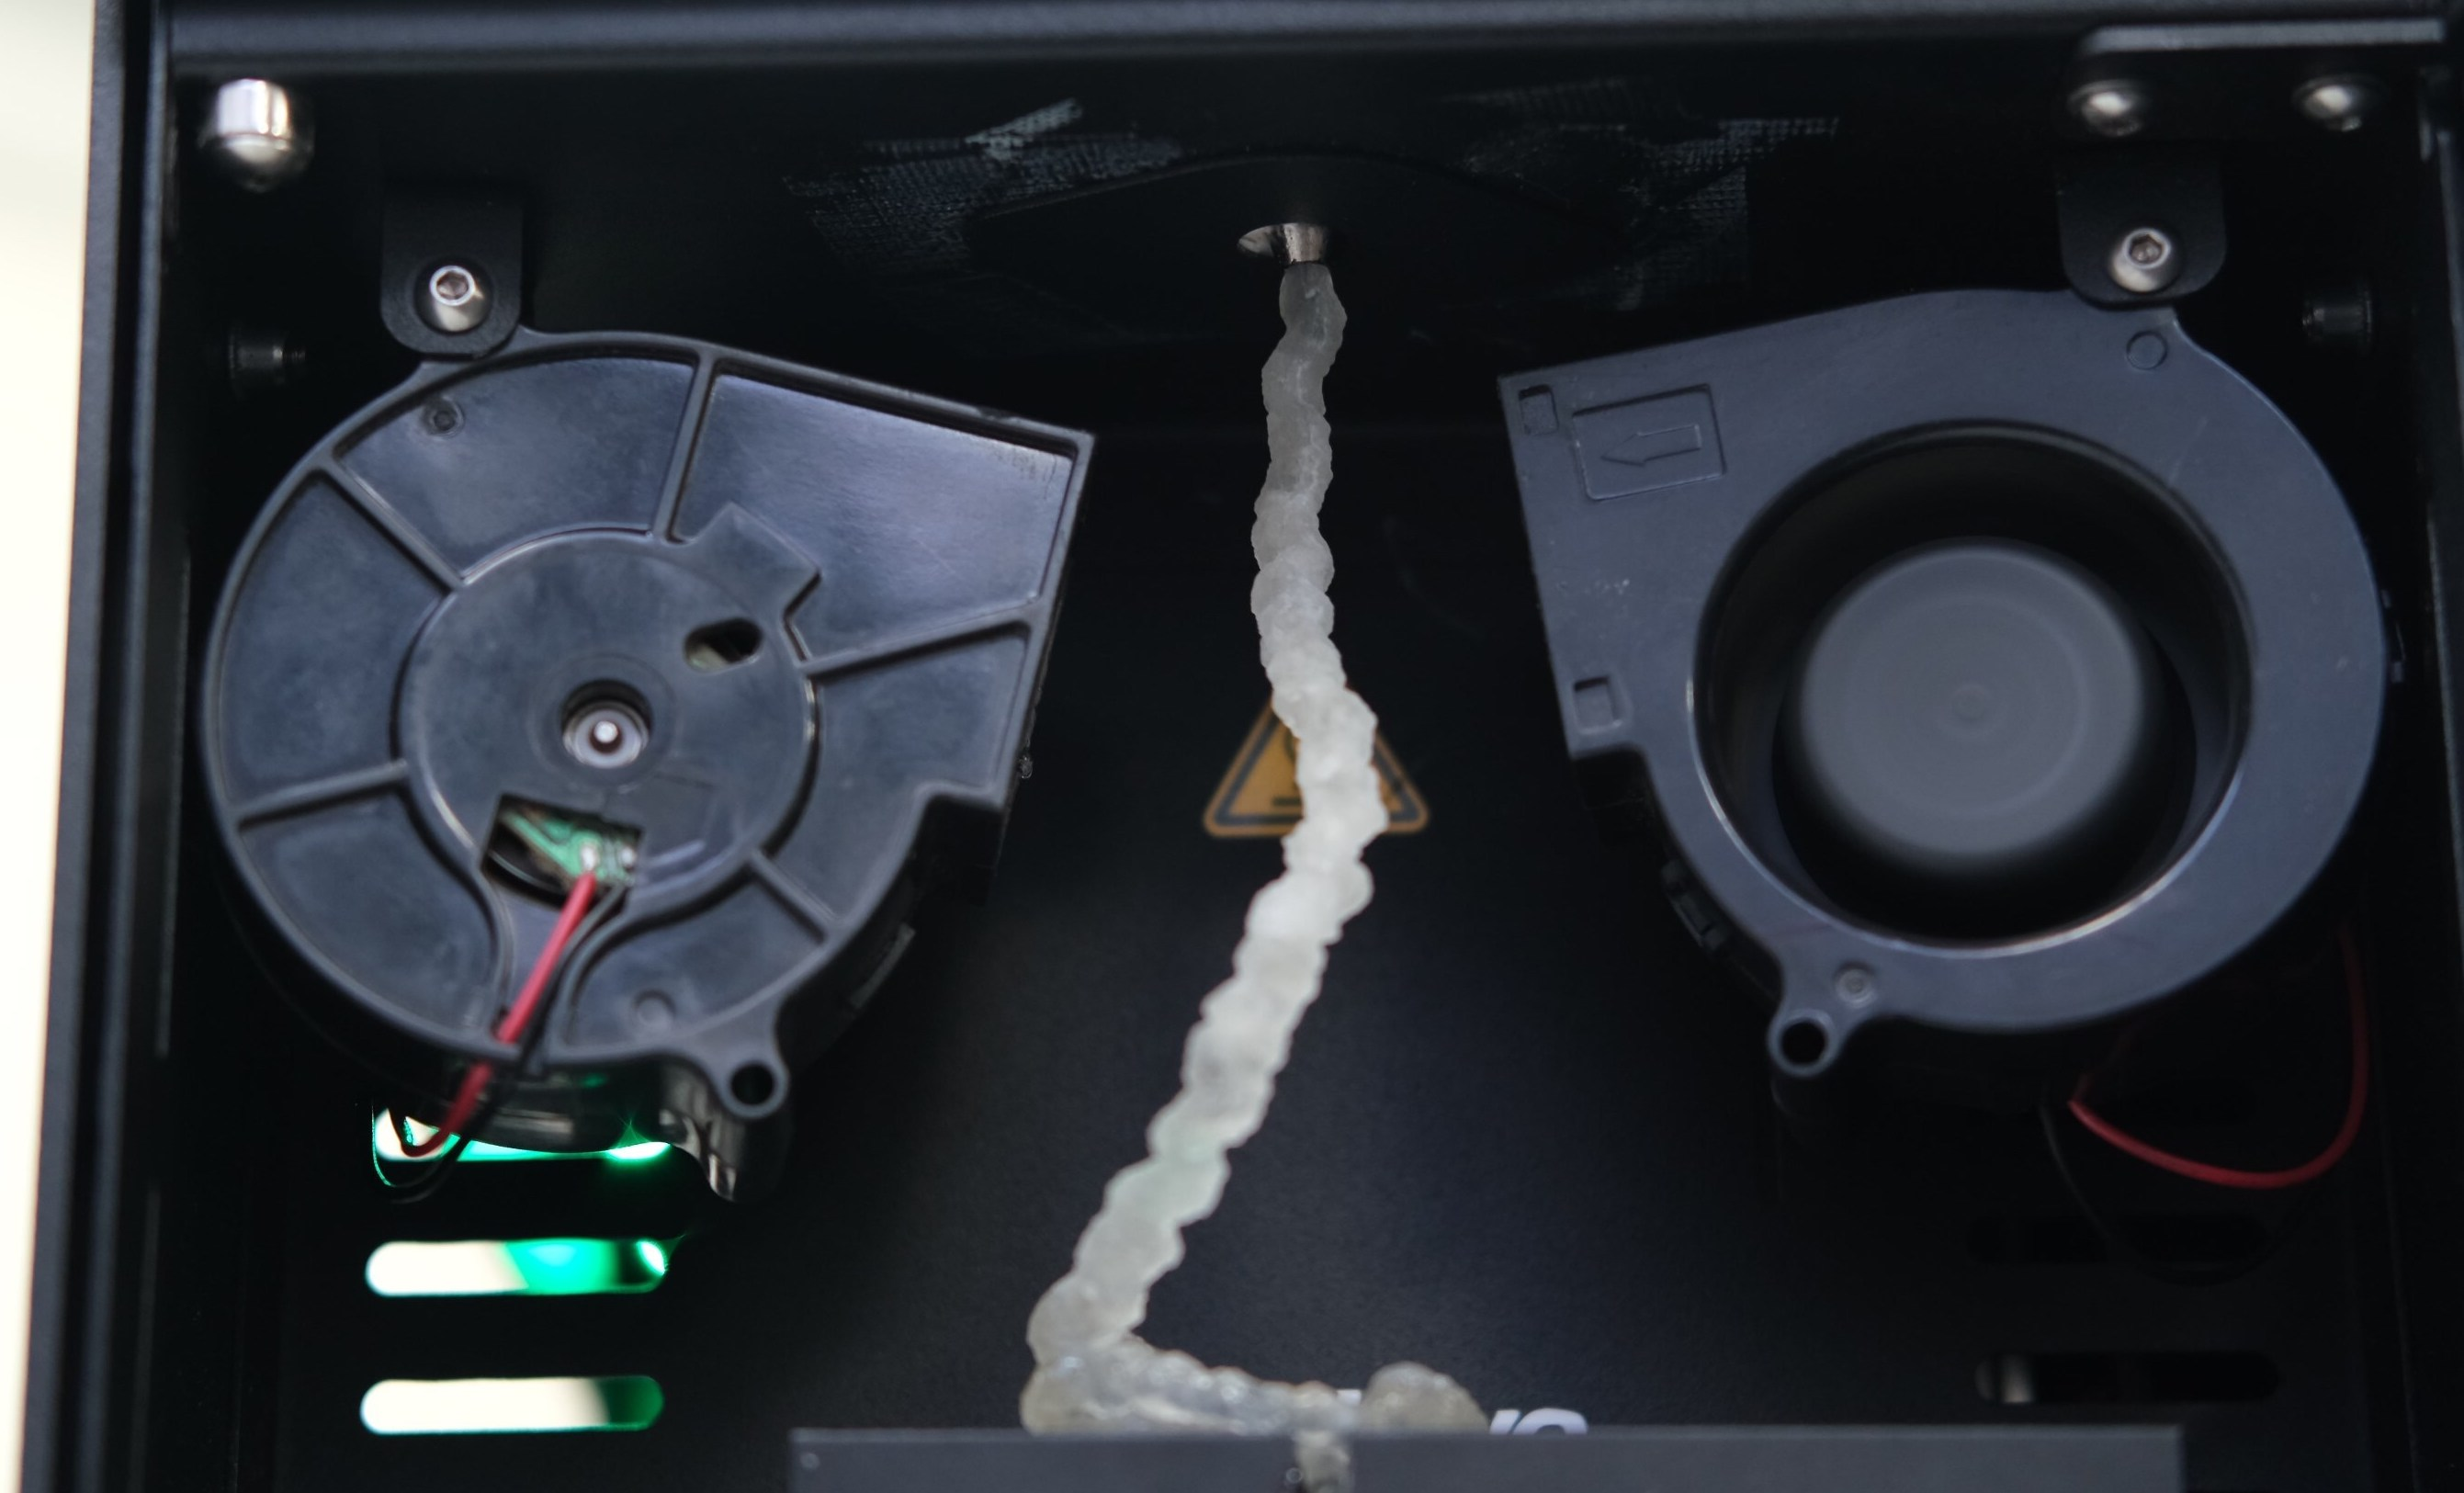 Cleaning a filament maker's extrusion barrel between jobs is vital to preventing any material cross-contamination. Photo via 3devo.